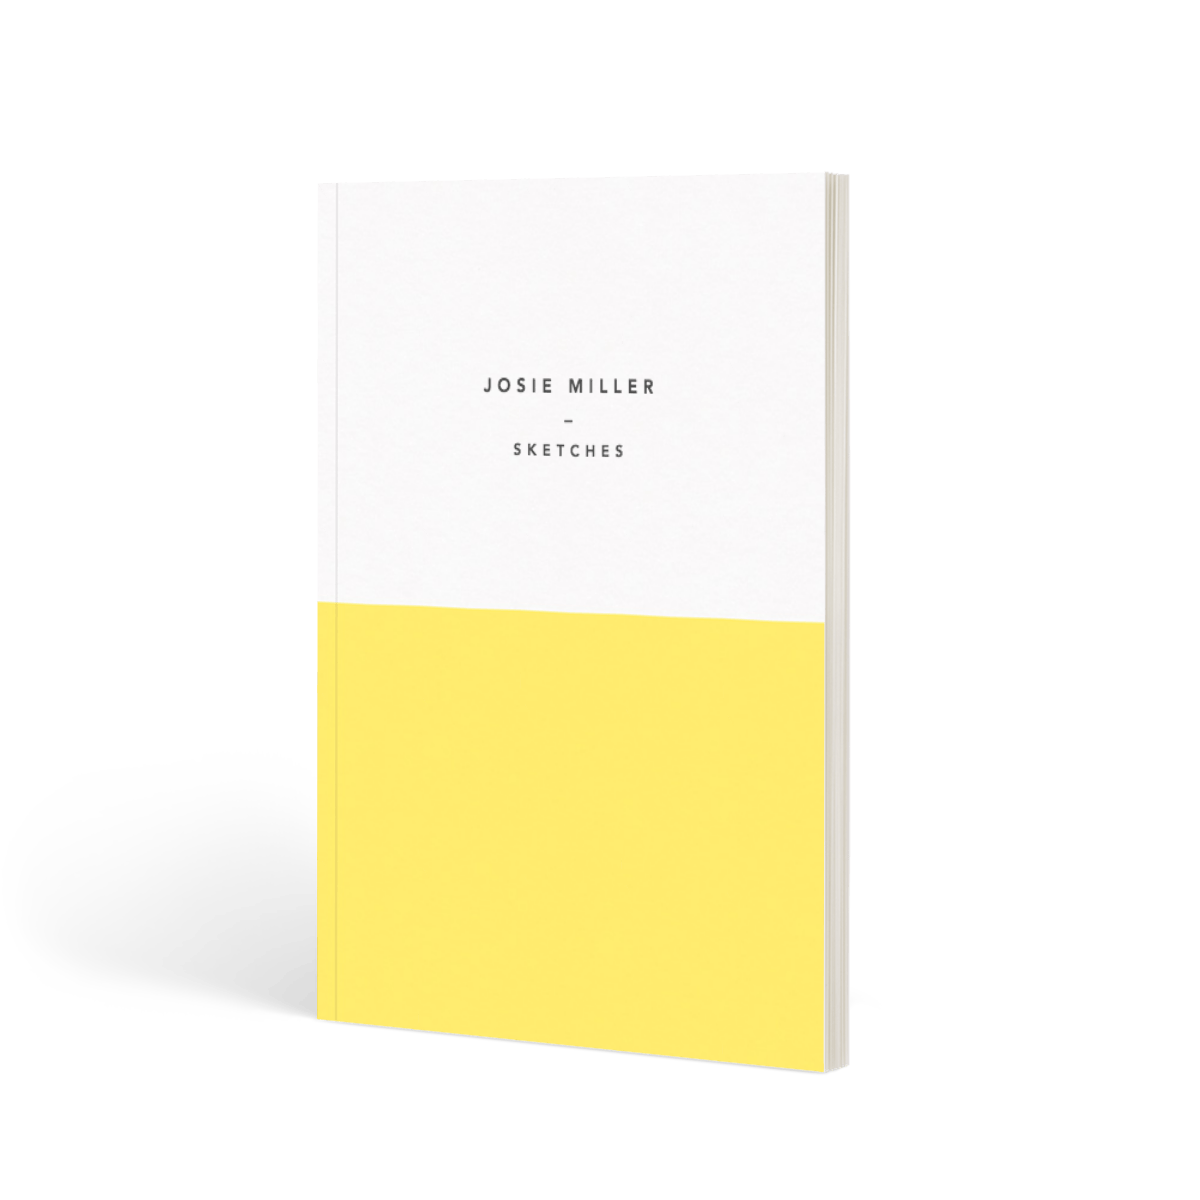 Https%3a%2f%2fwww.papier.com%2fproduct image%2f36948%2f3%2fdemi yellow 9296 front 1534791788.png?ixlib=rb 1.1